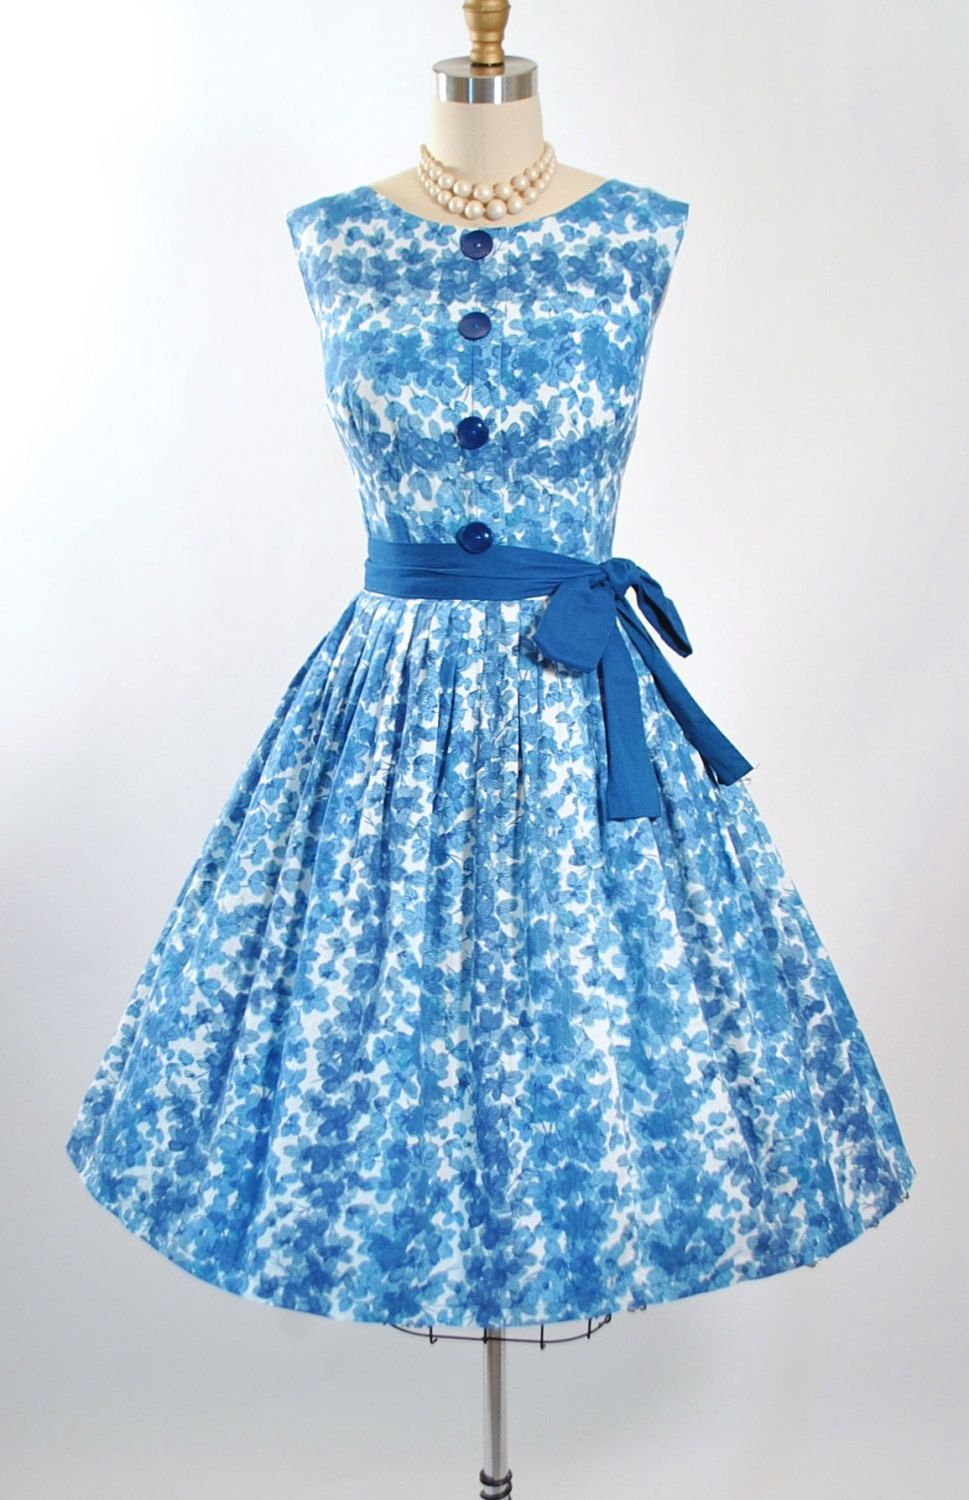 ♢ Vintage 1950s Garden Party Sundress by Mode O Day. ♢ Constructed ...